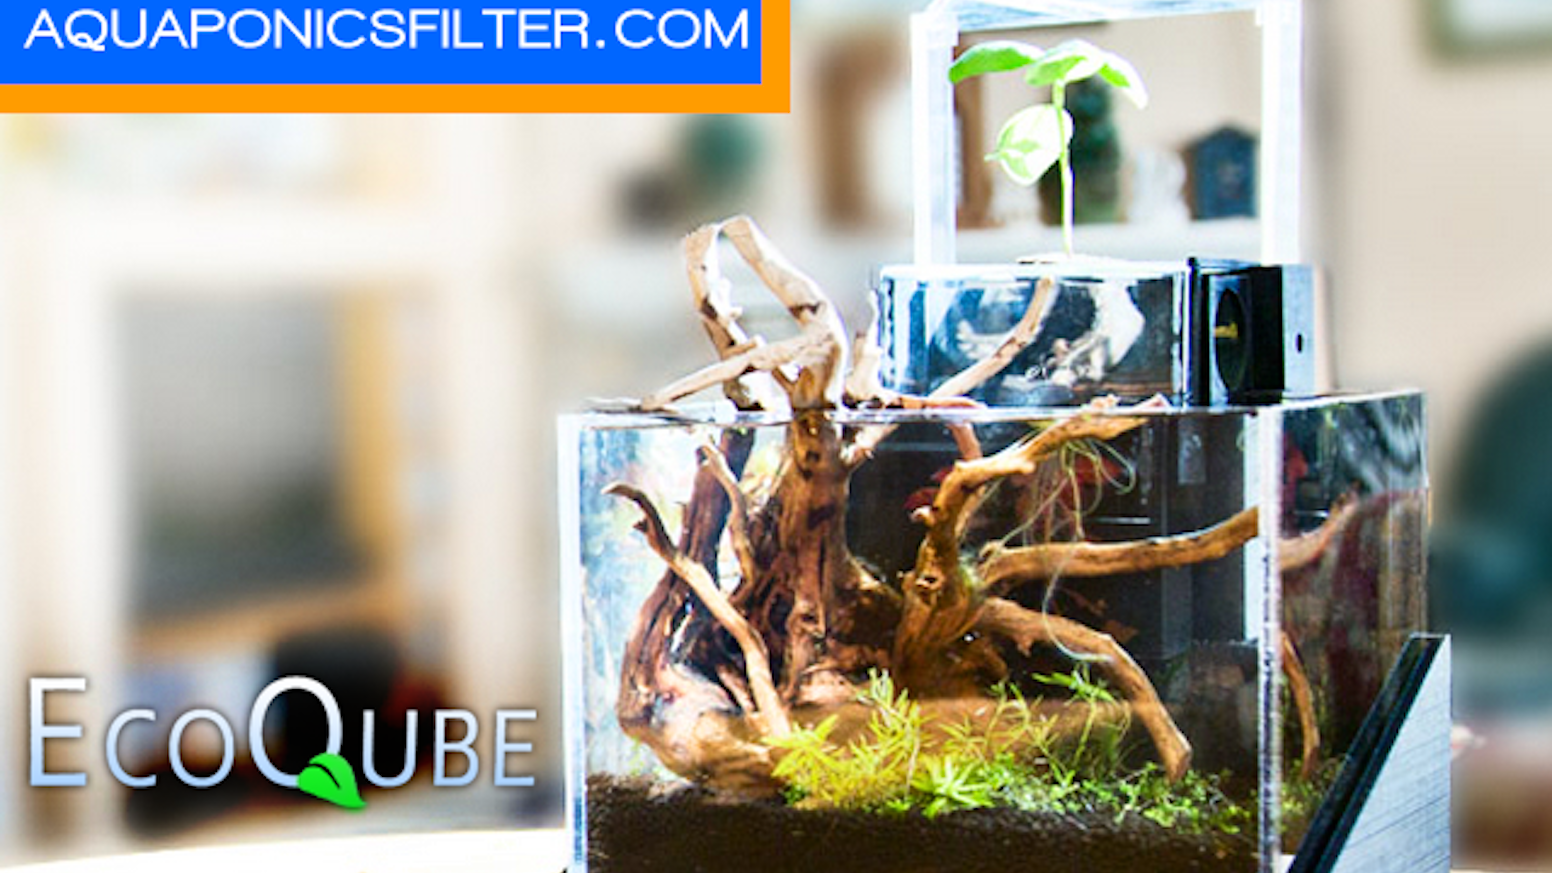 The most beautiful way to grow herbs, house plants or flowers indoor while using the same plants to clean aquarium water with ease!